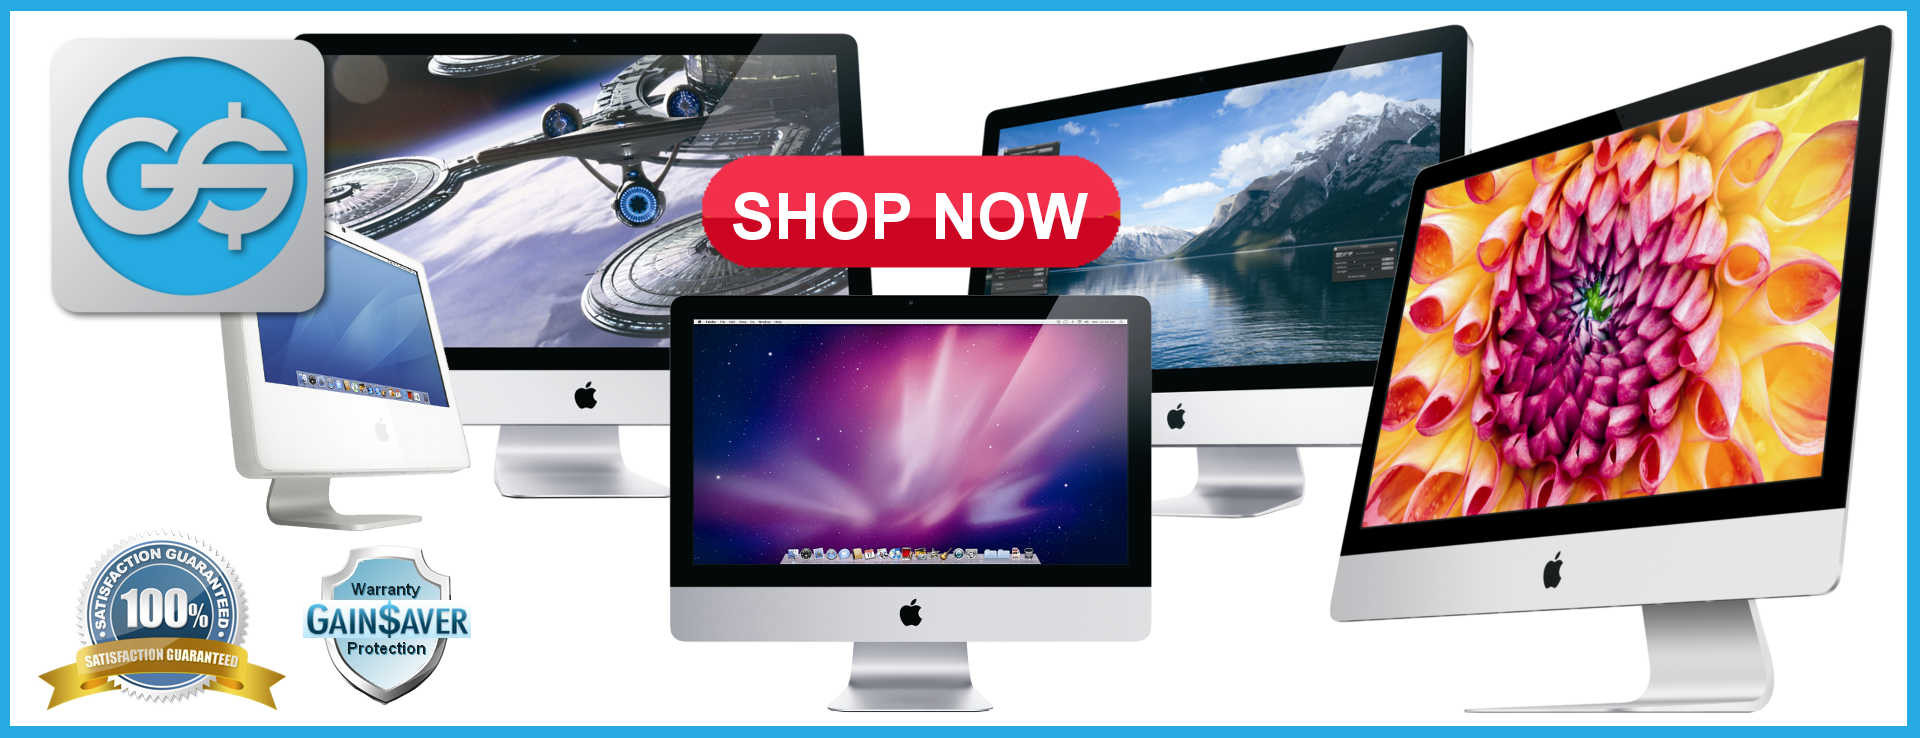 Don't Miss the Best Deals on Refurbished iMacs